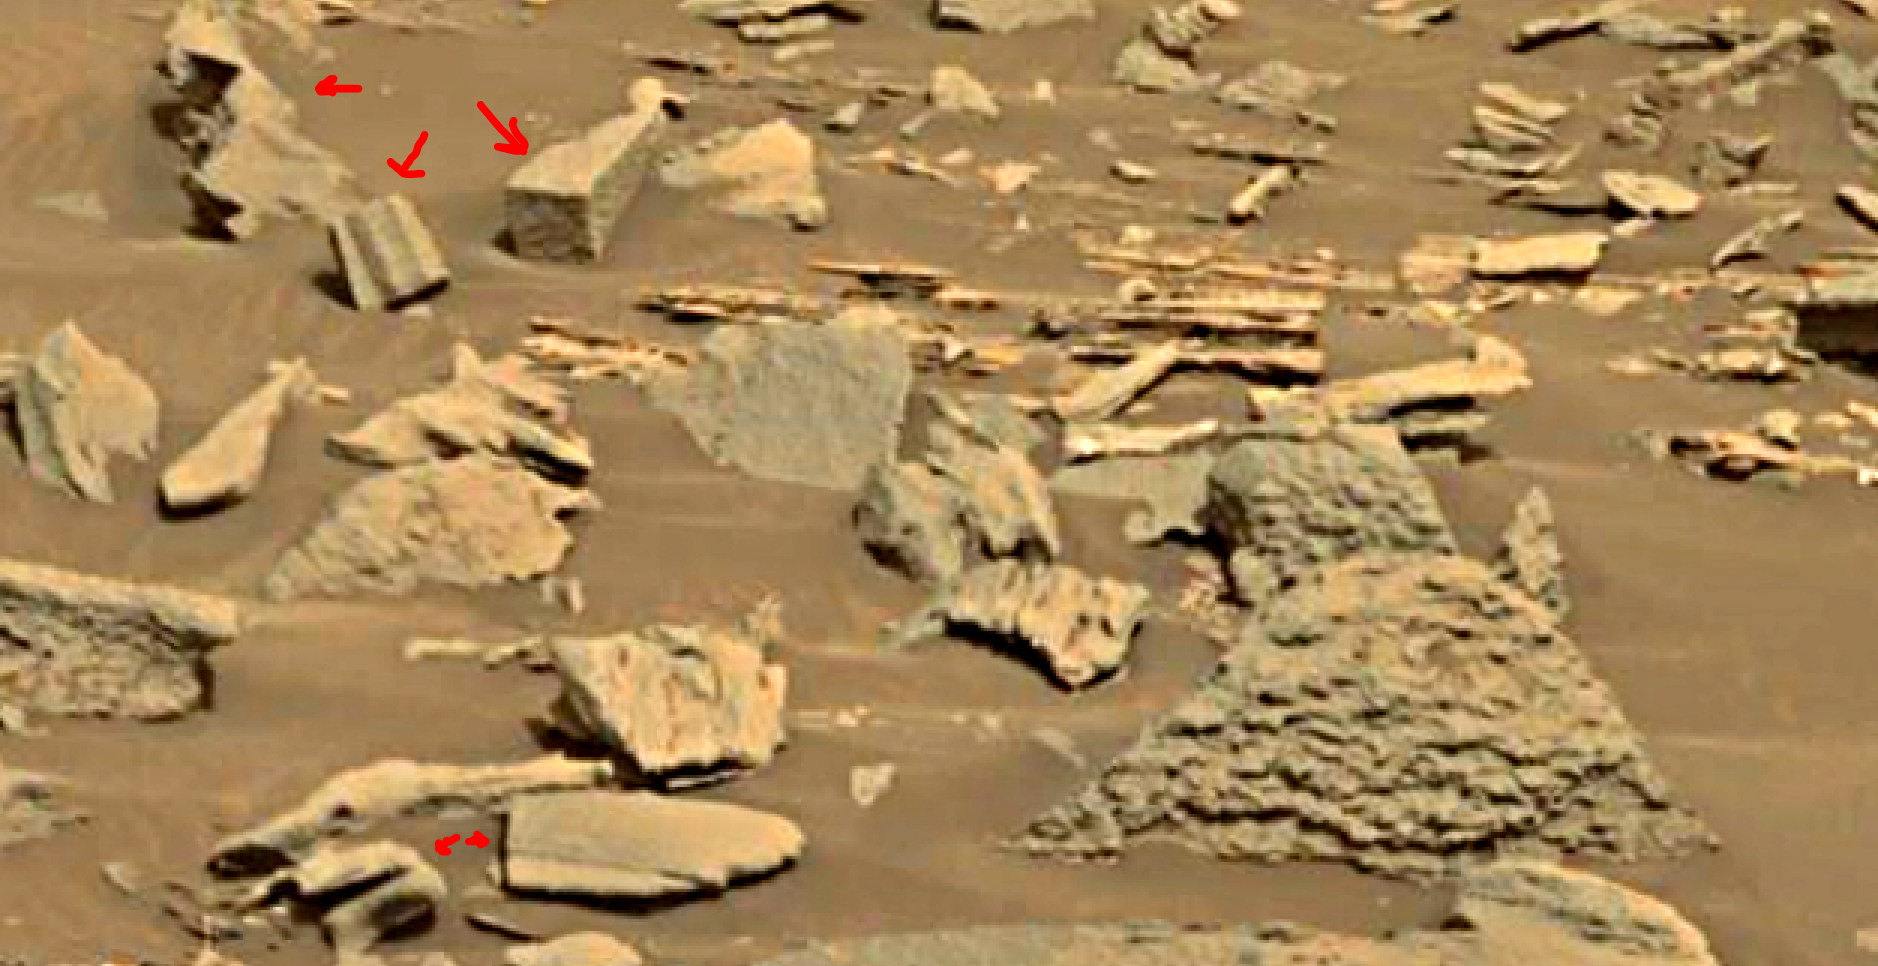 mars-sol-1451-anomaly-artifacts-10-was-life-on-mars